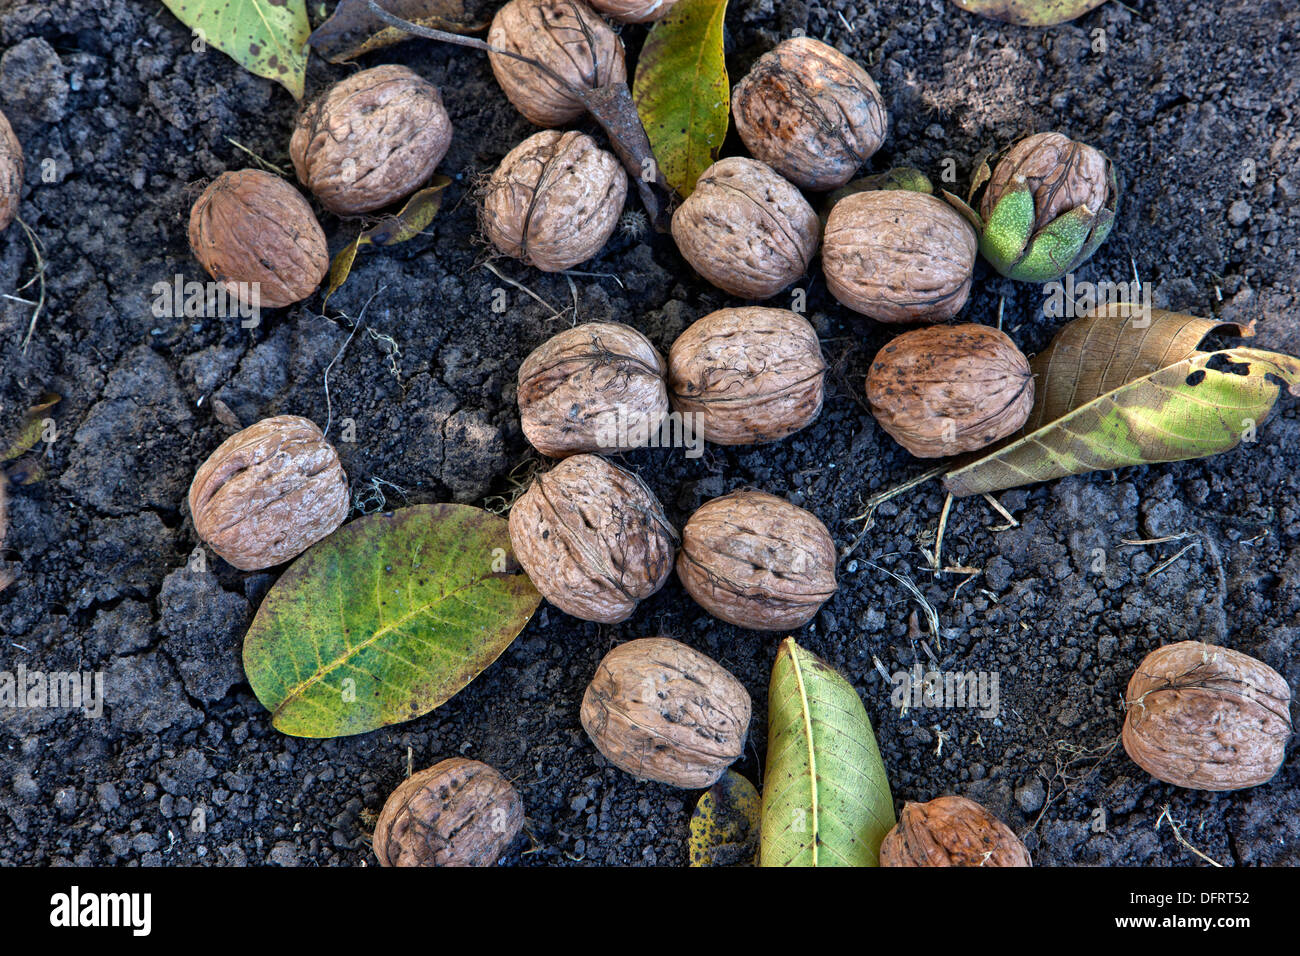 Mature English Walnuts shed from branch, harvest time. - Stock Image